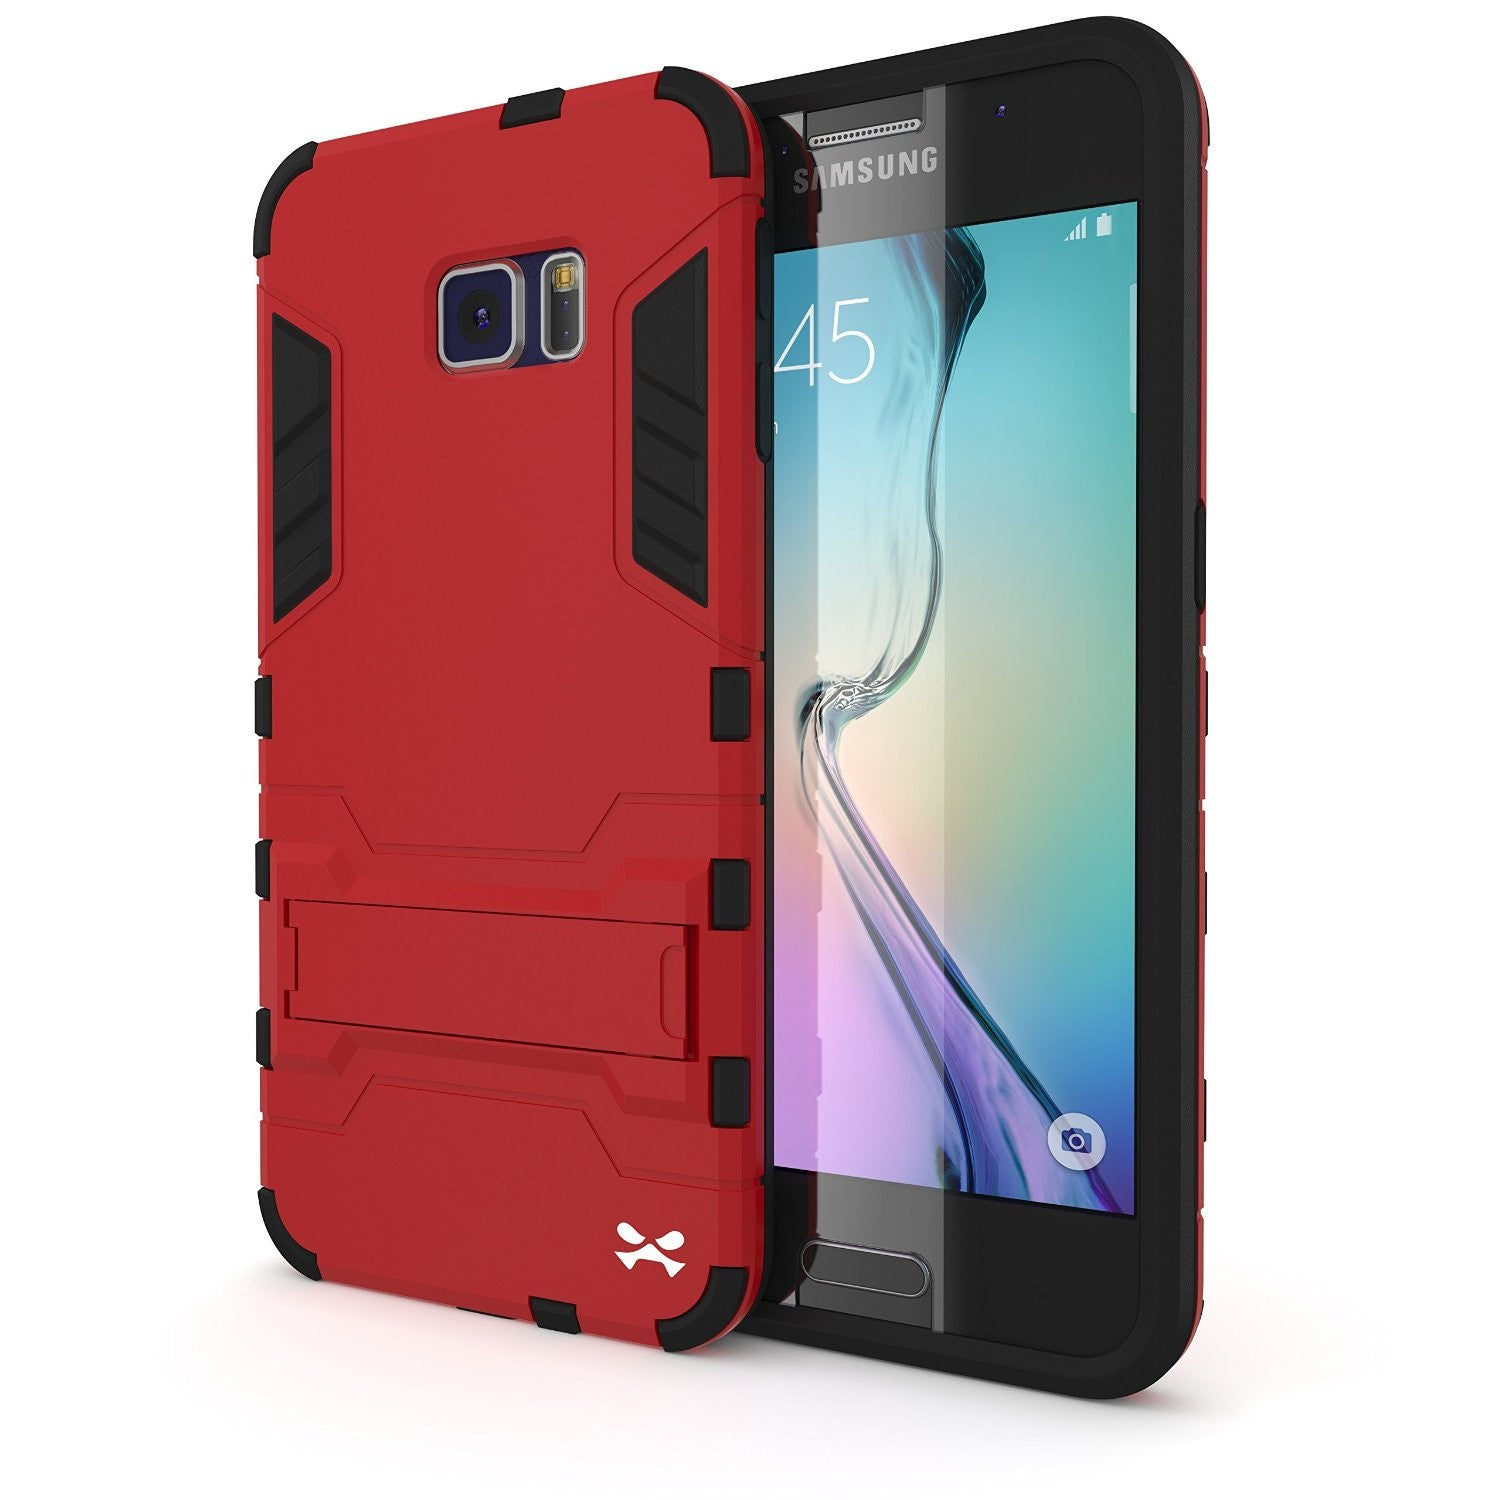 S6 Case, Ghostek Armadillo - Red Samsung Galaxy S6 Case w/ Tempered Glass Screen Protector